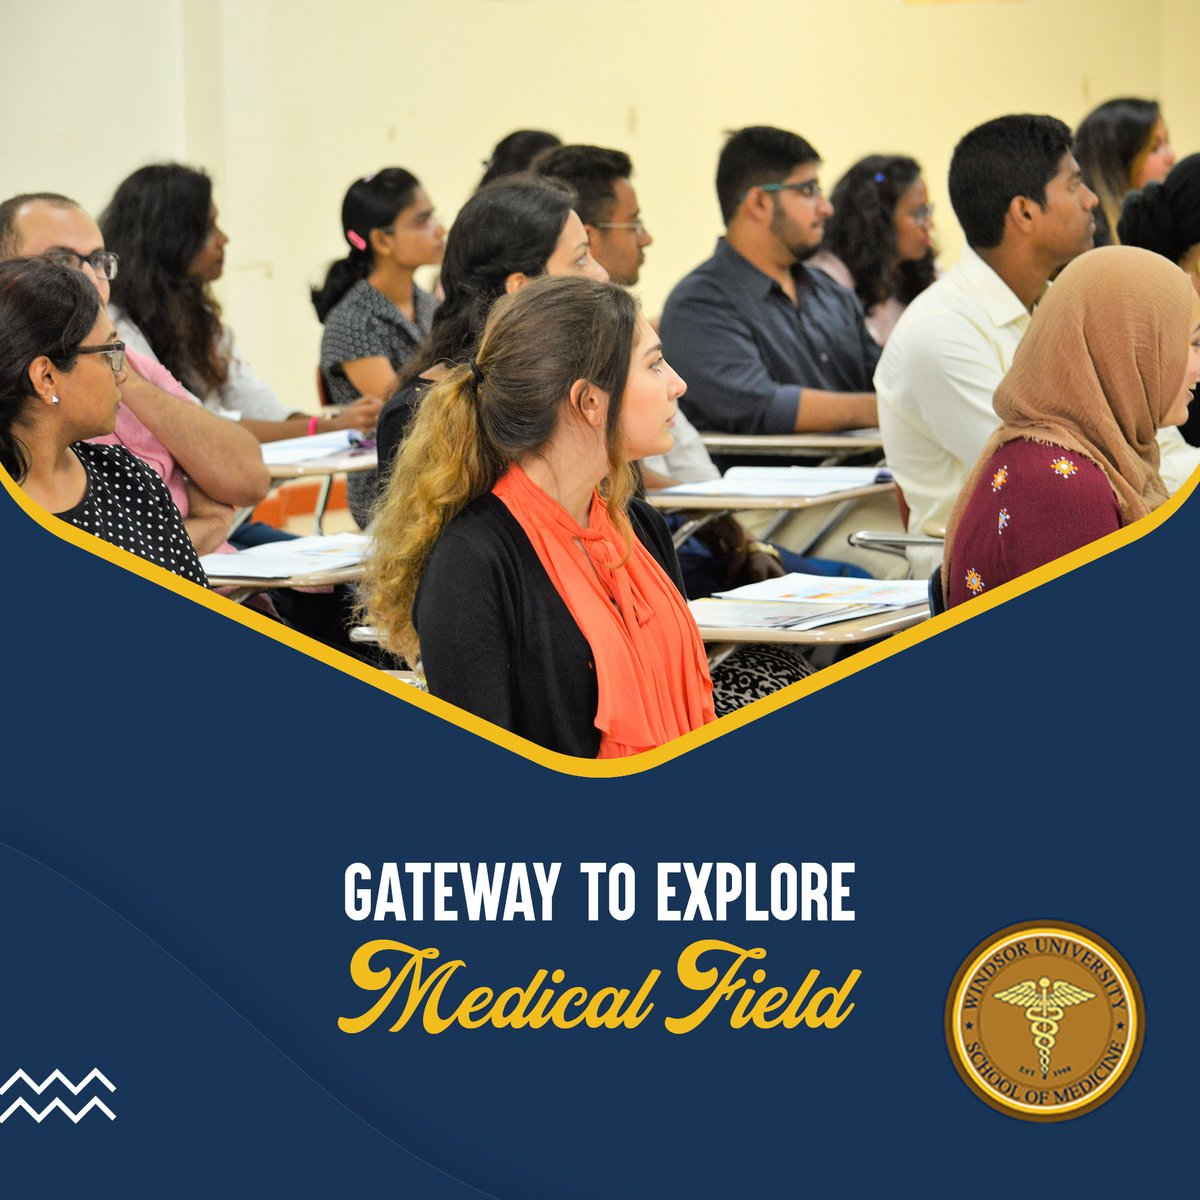 WUSOM have designed the medical course outline perfectly that can give you the reflection of all aspects regarding history, examination and current updates.  For more information, click this link: https://t.co/5RDB30ltpr  #medicalfield #exploremedicine #studymedicine #WUSOM https://t.co/HBsNvhxBLA